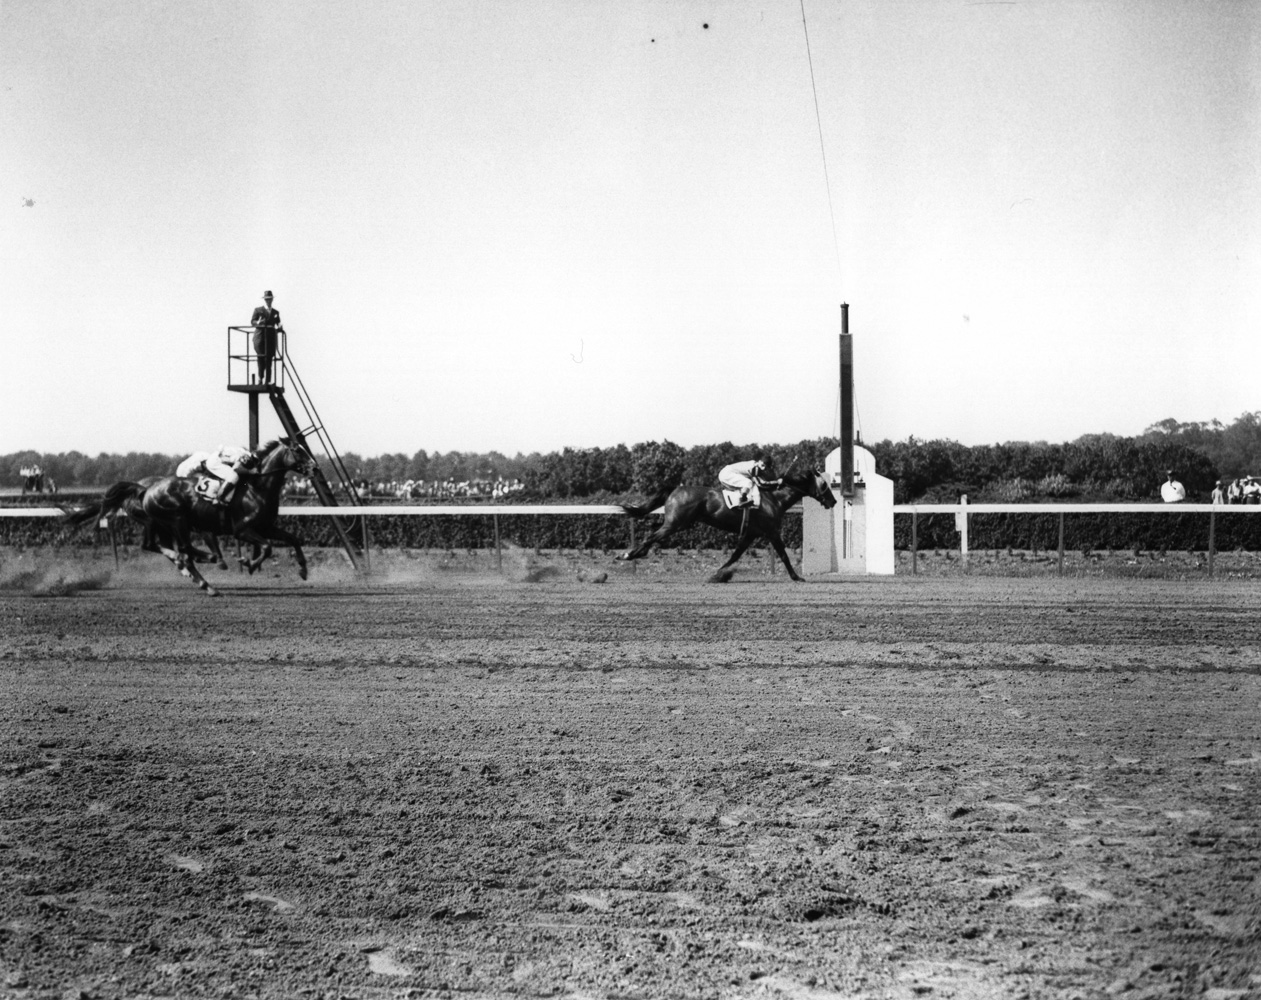 Devil Diver (Eddie Arcaro up) winning the 1945 Suburban Handicap at Belmont Park (Keeneland Library Morgan Collection/Museum Collection)